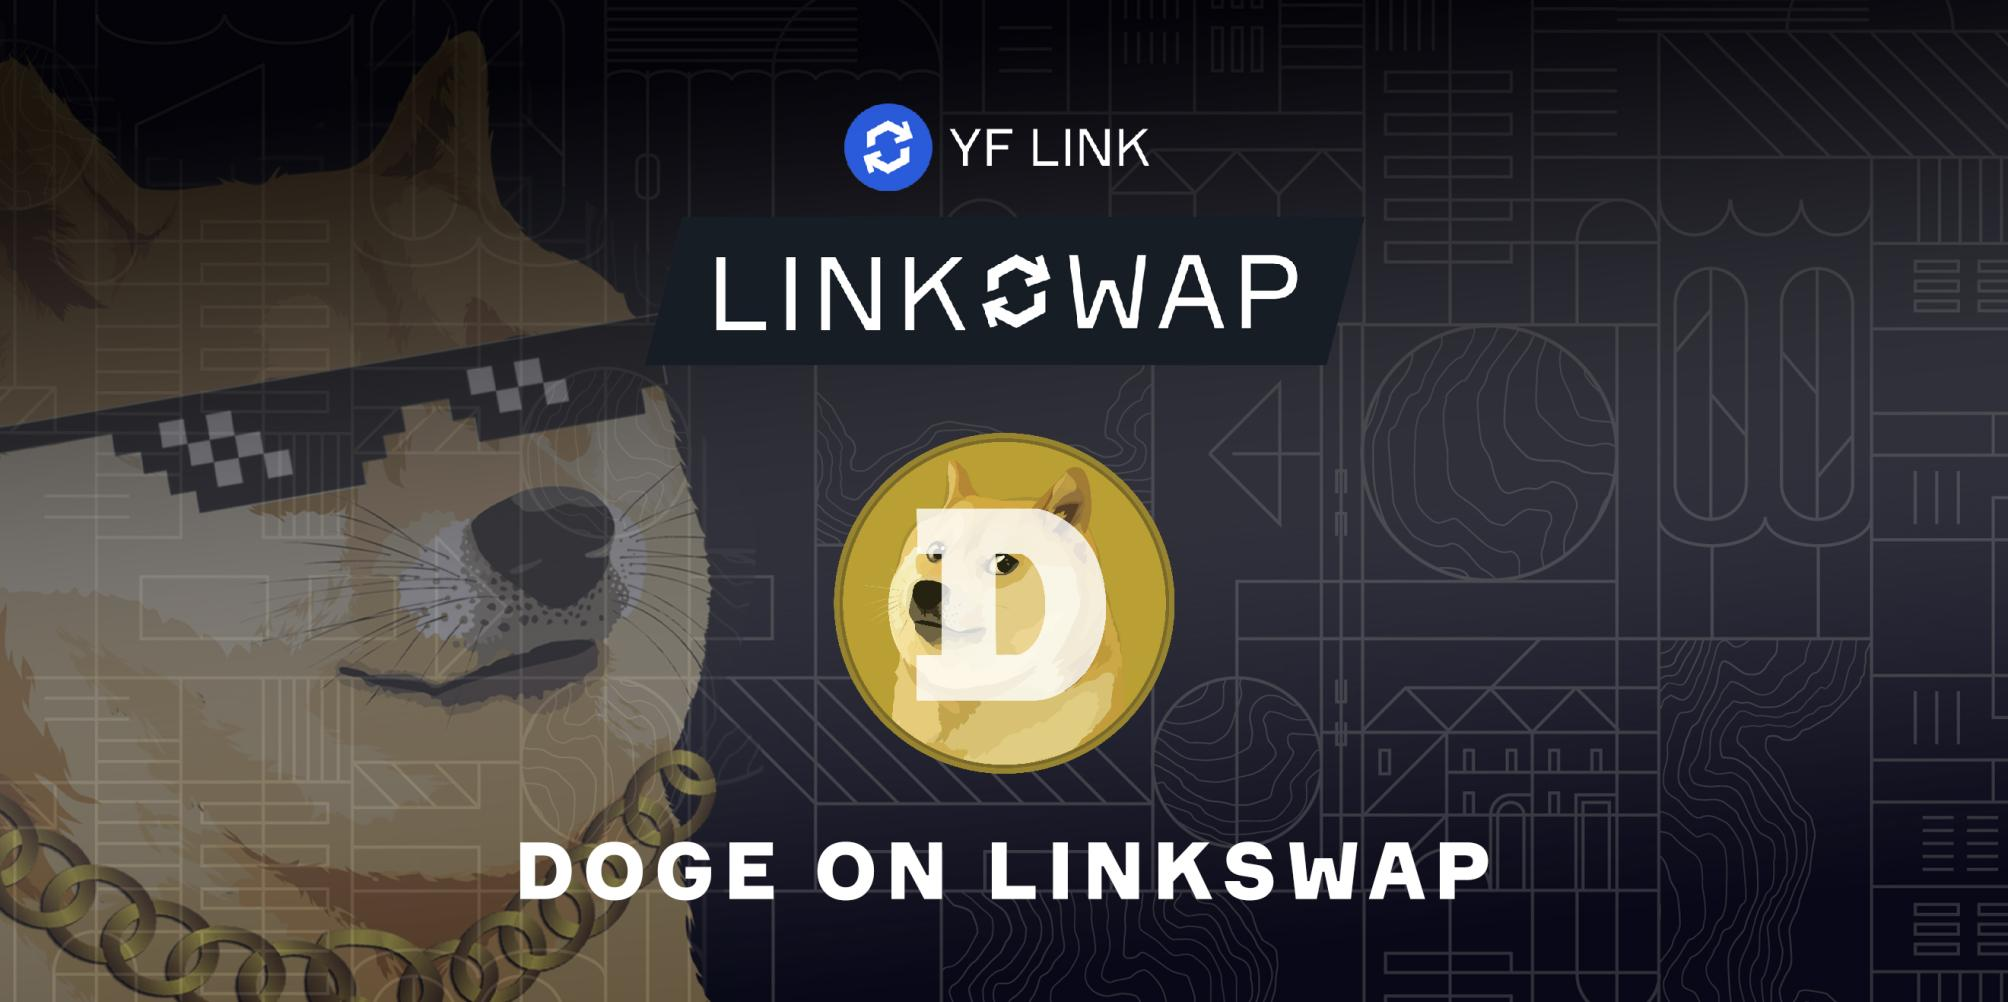 LINKSWAP integrates renDOGE